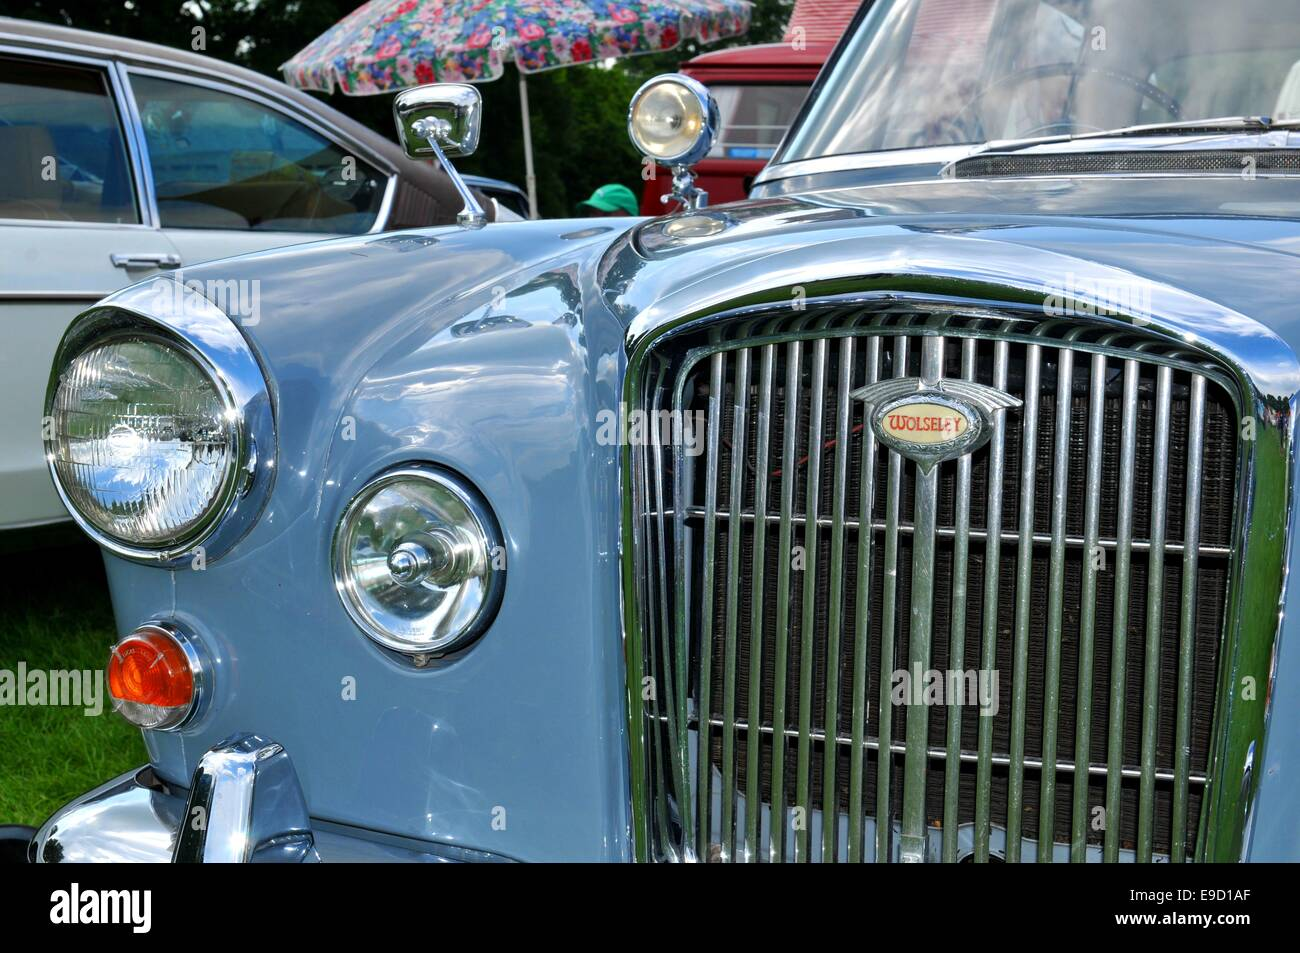 NOTTINGHAM, UK. JUNE 1, 2014: view of vintage car for sale in Stock ...